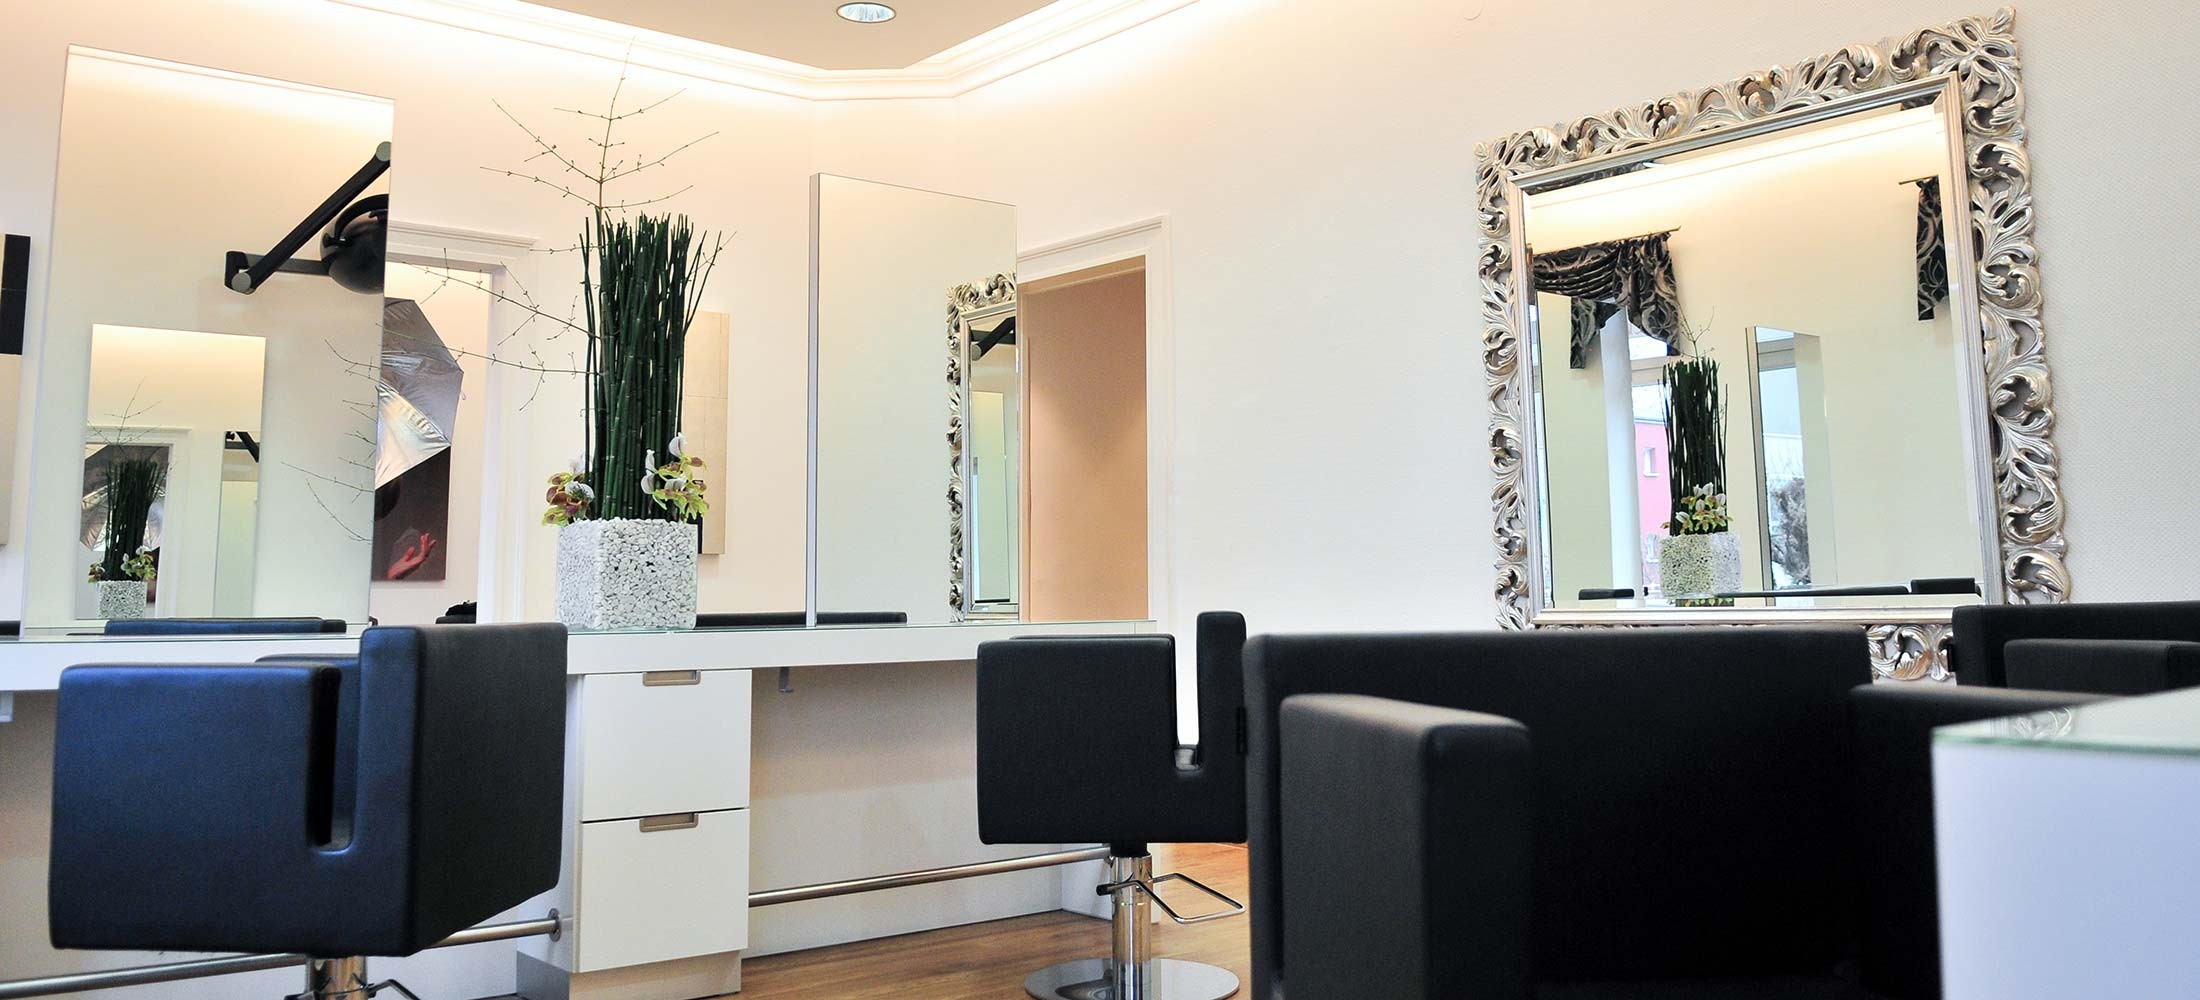 Intercoiffure Kochanski Friseur In Bad Soden